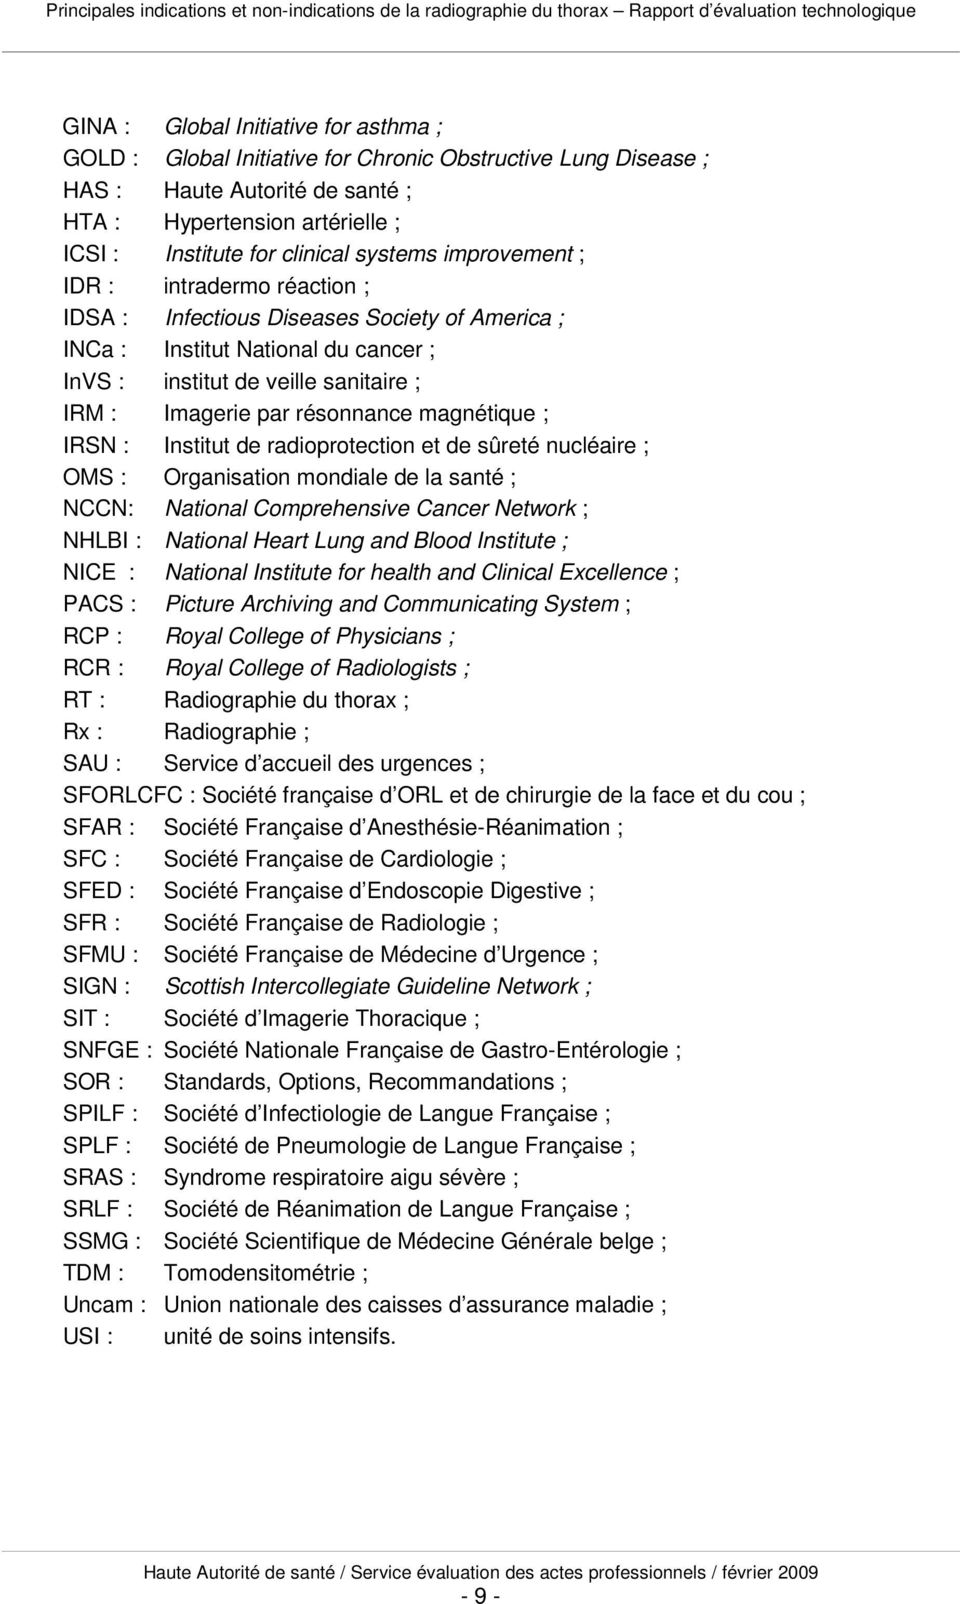 résonnance magnétique ; IRSN : Institut de radioprotection et de sûreté nucléaire ; OMS : Organisation mondiale de la santé ; NCCN: National Comprehensive Cancer Network ; NHLBI : National Heart Lung